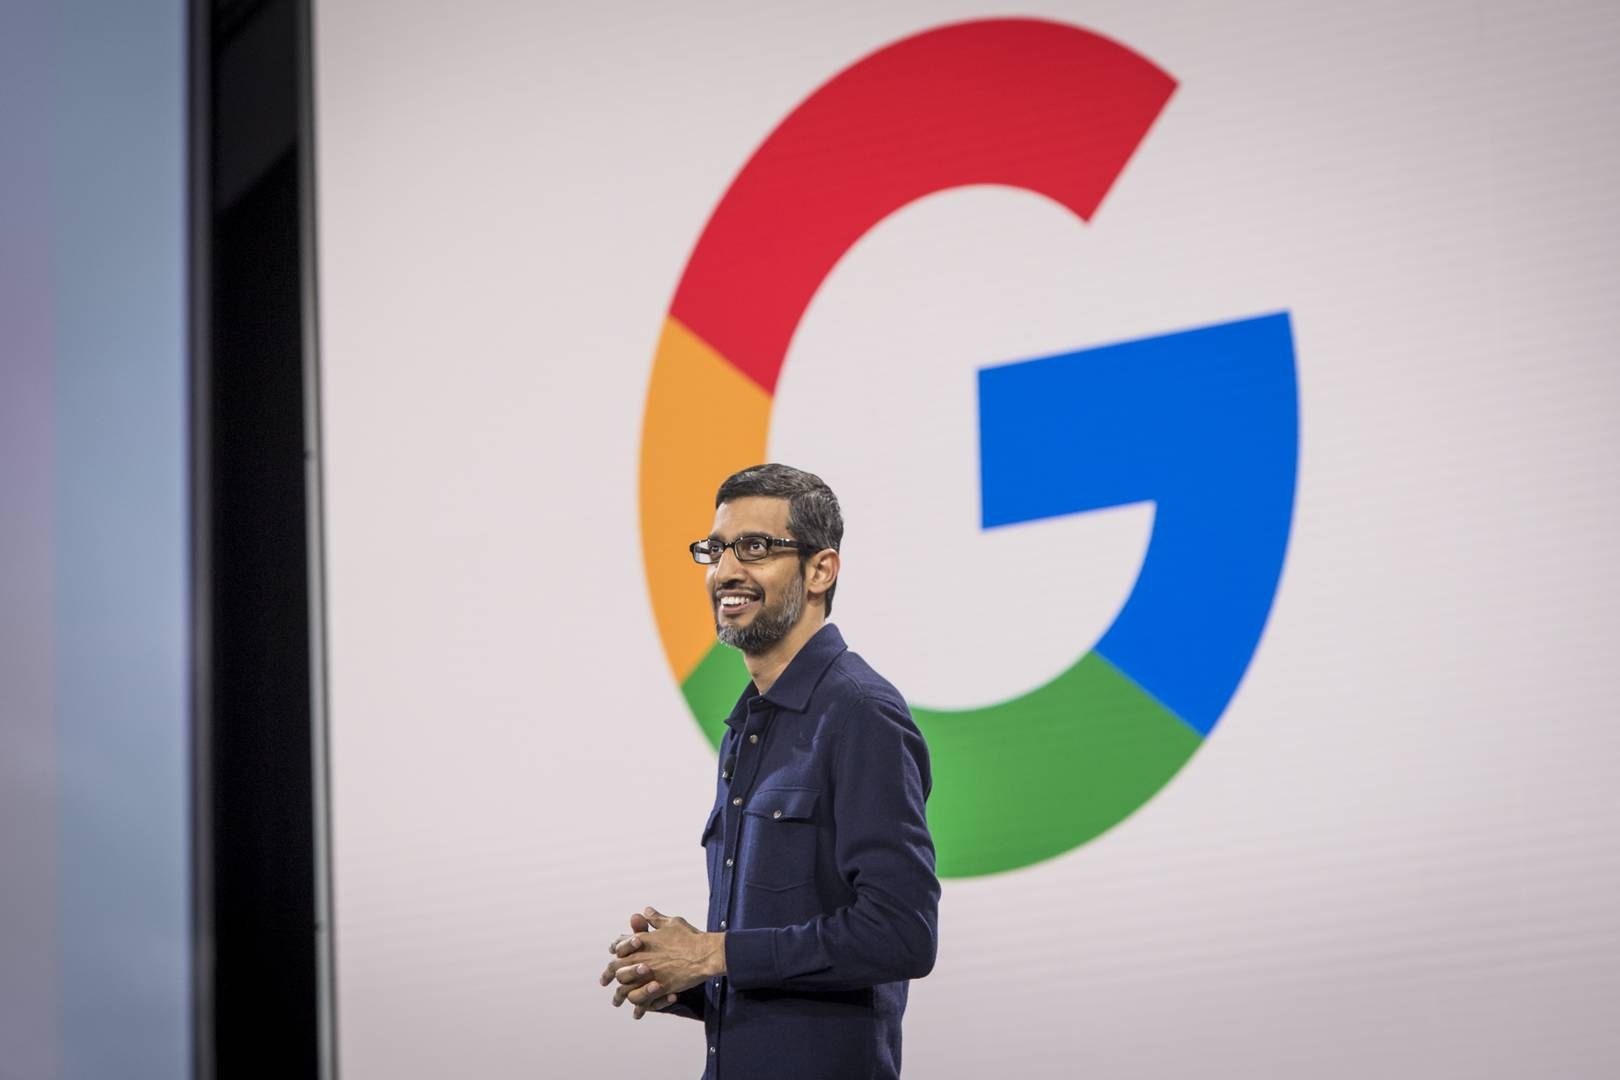 Google is the UK's best employer, but that's not the whole story